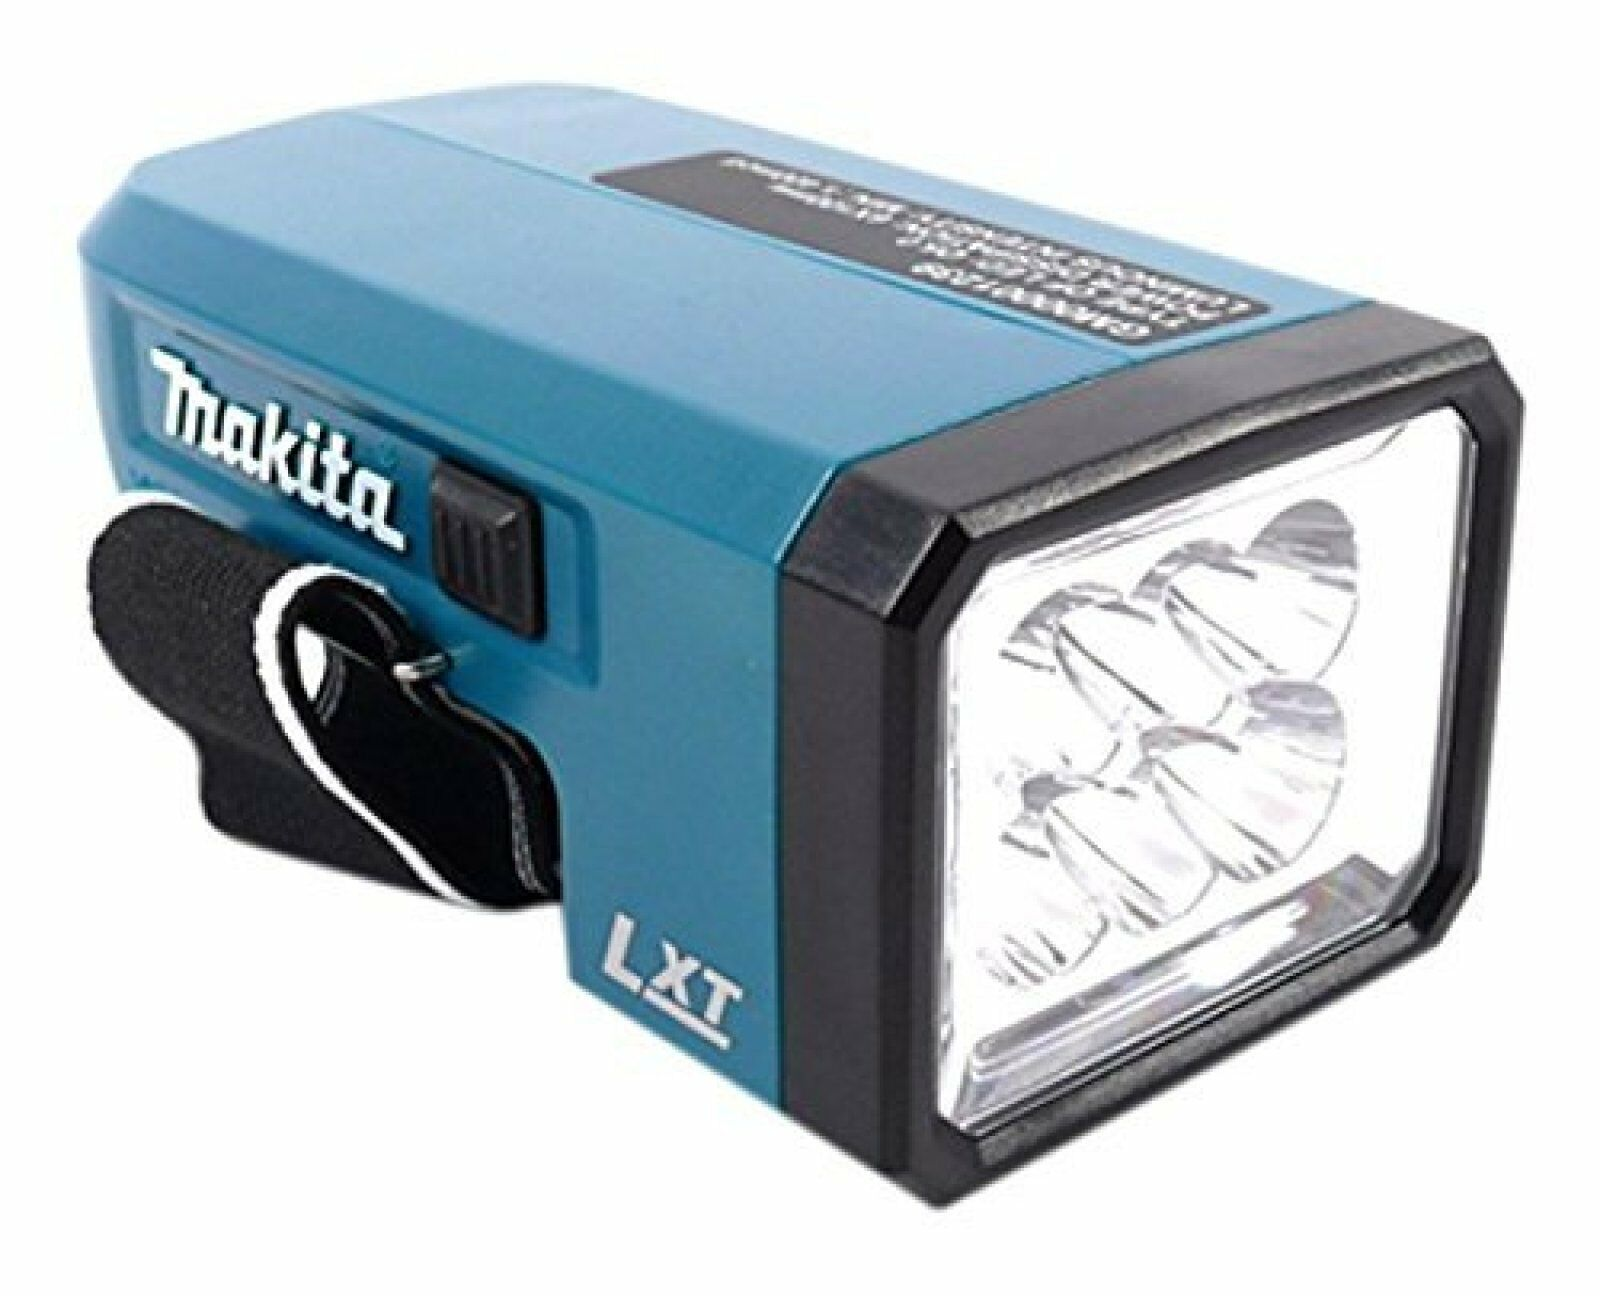 MAKITA HANDHELD LED TORCH - DML186 - BODY ONLY